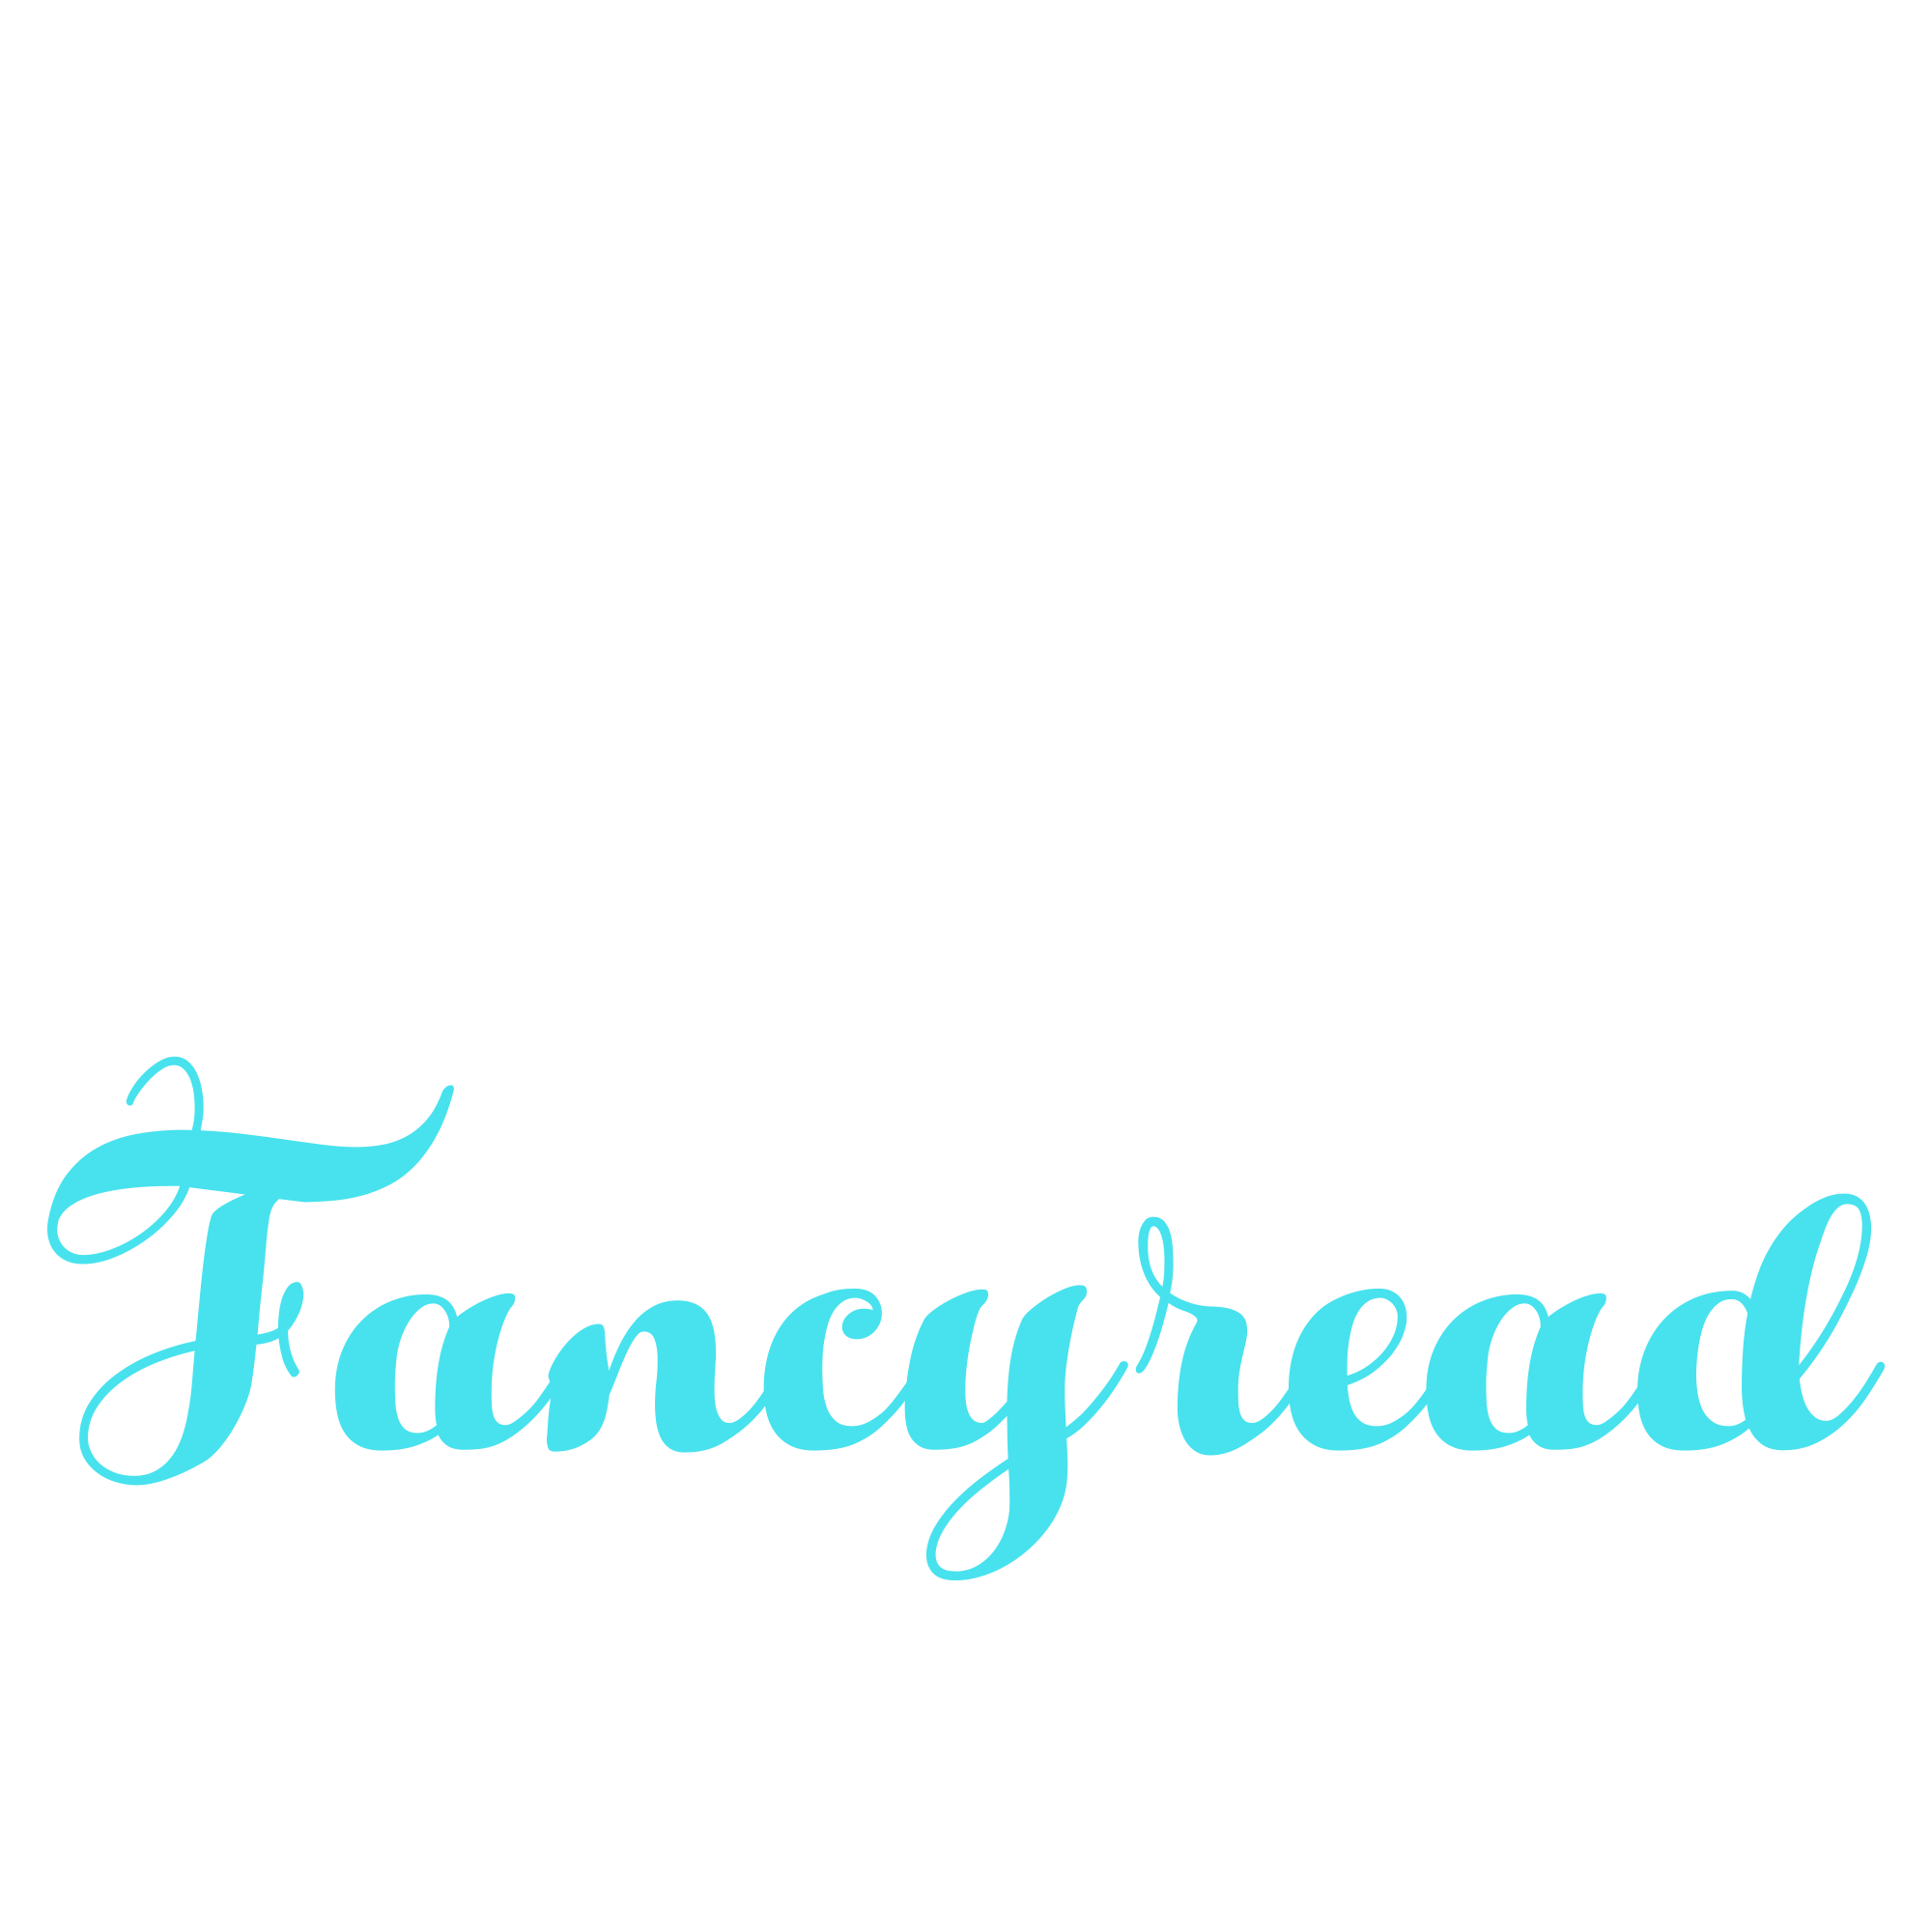 Fancyread Inc.